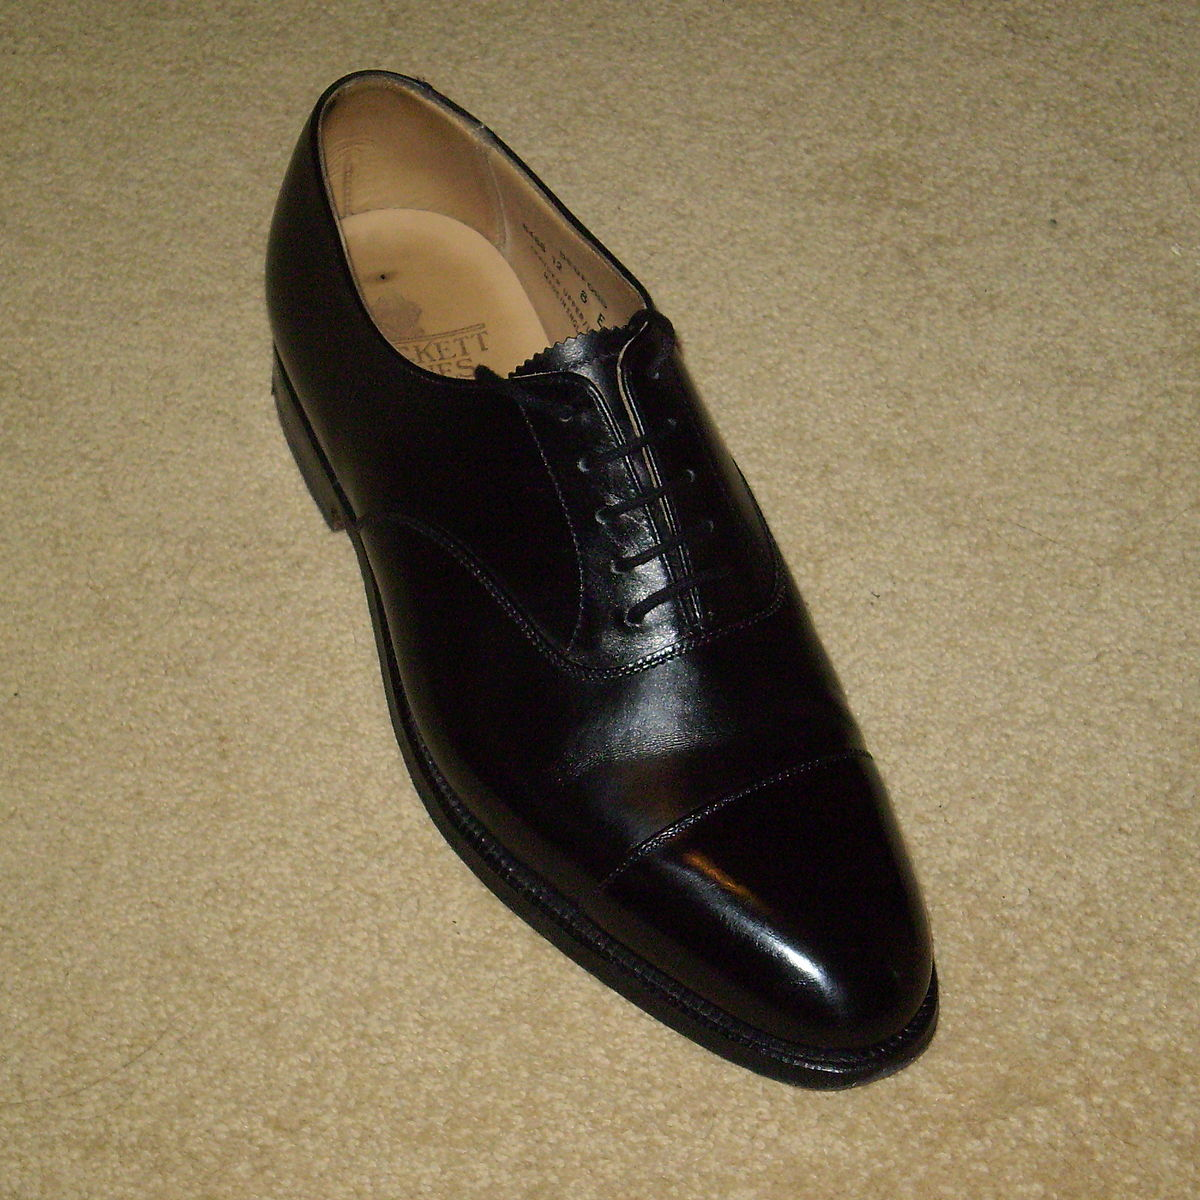 ac13b72bbf6 Oxford shoe - Wikipedia